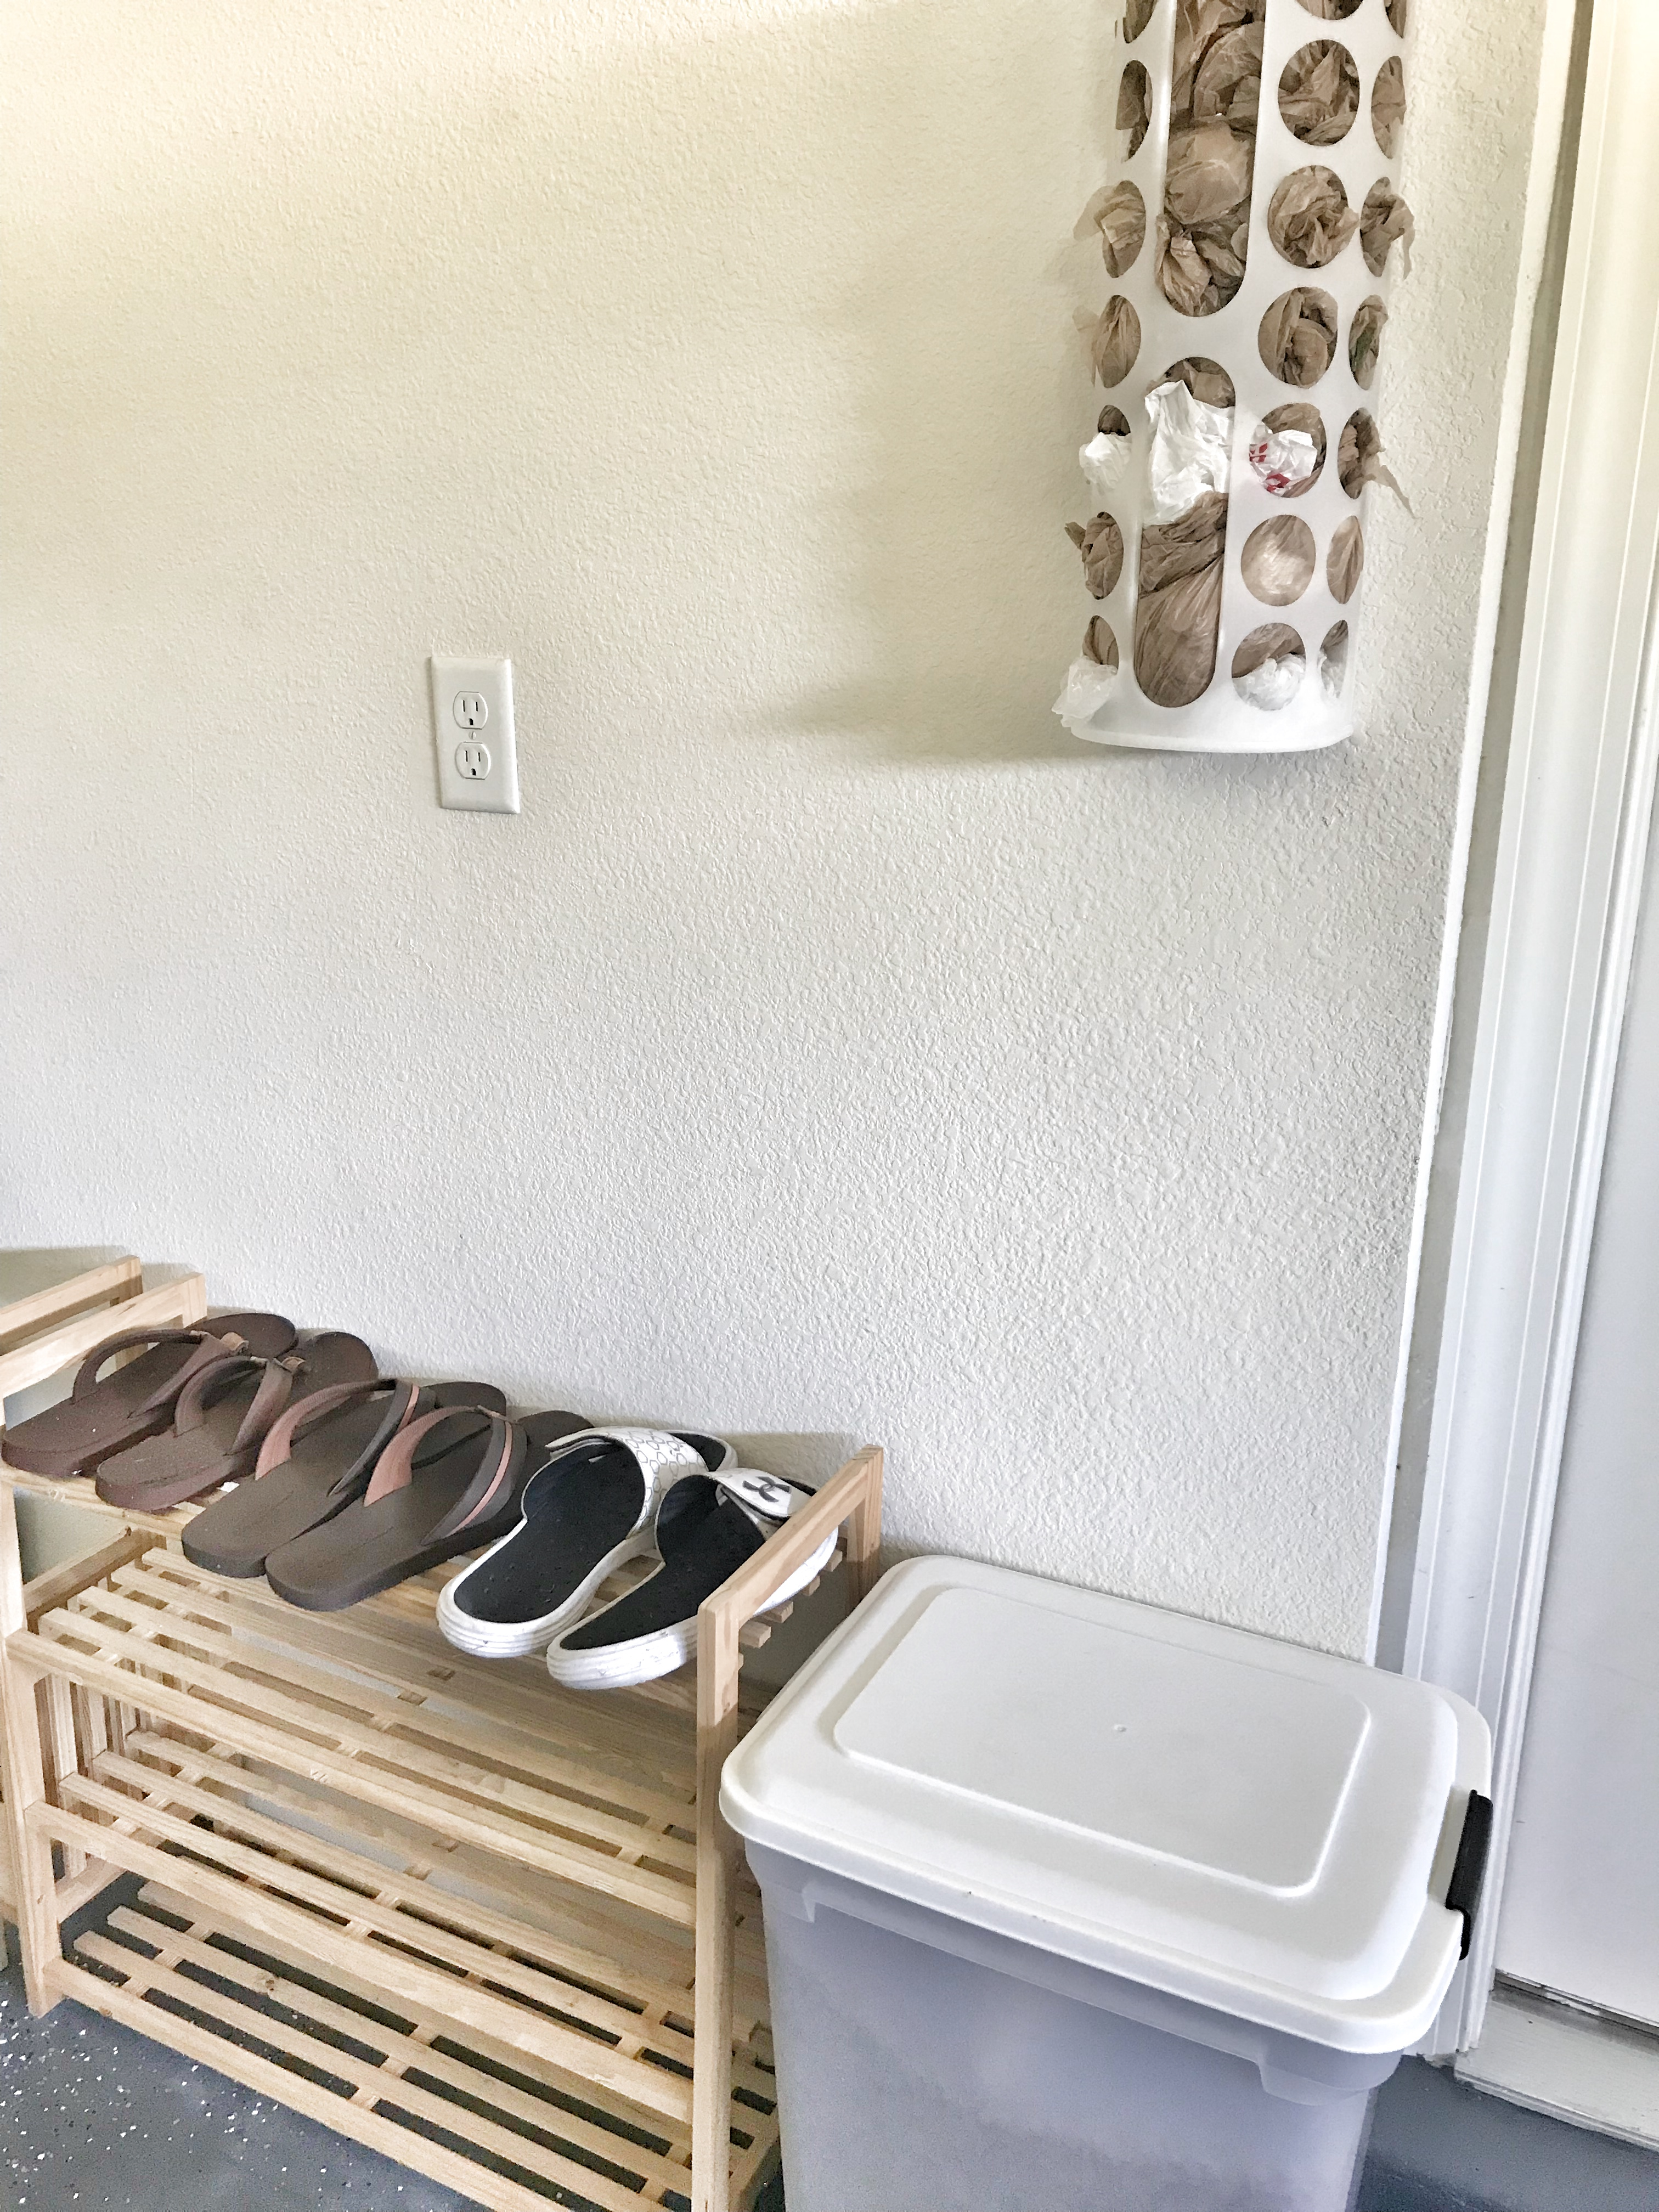 Part Two - How To Organize An Already Organized Room